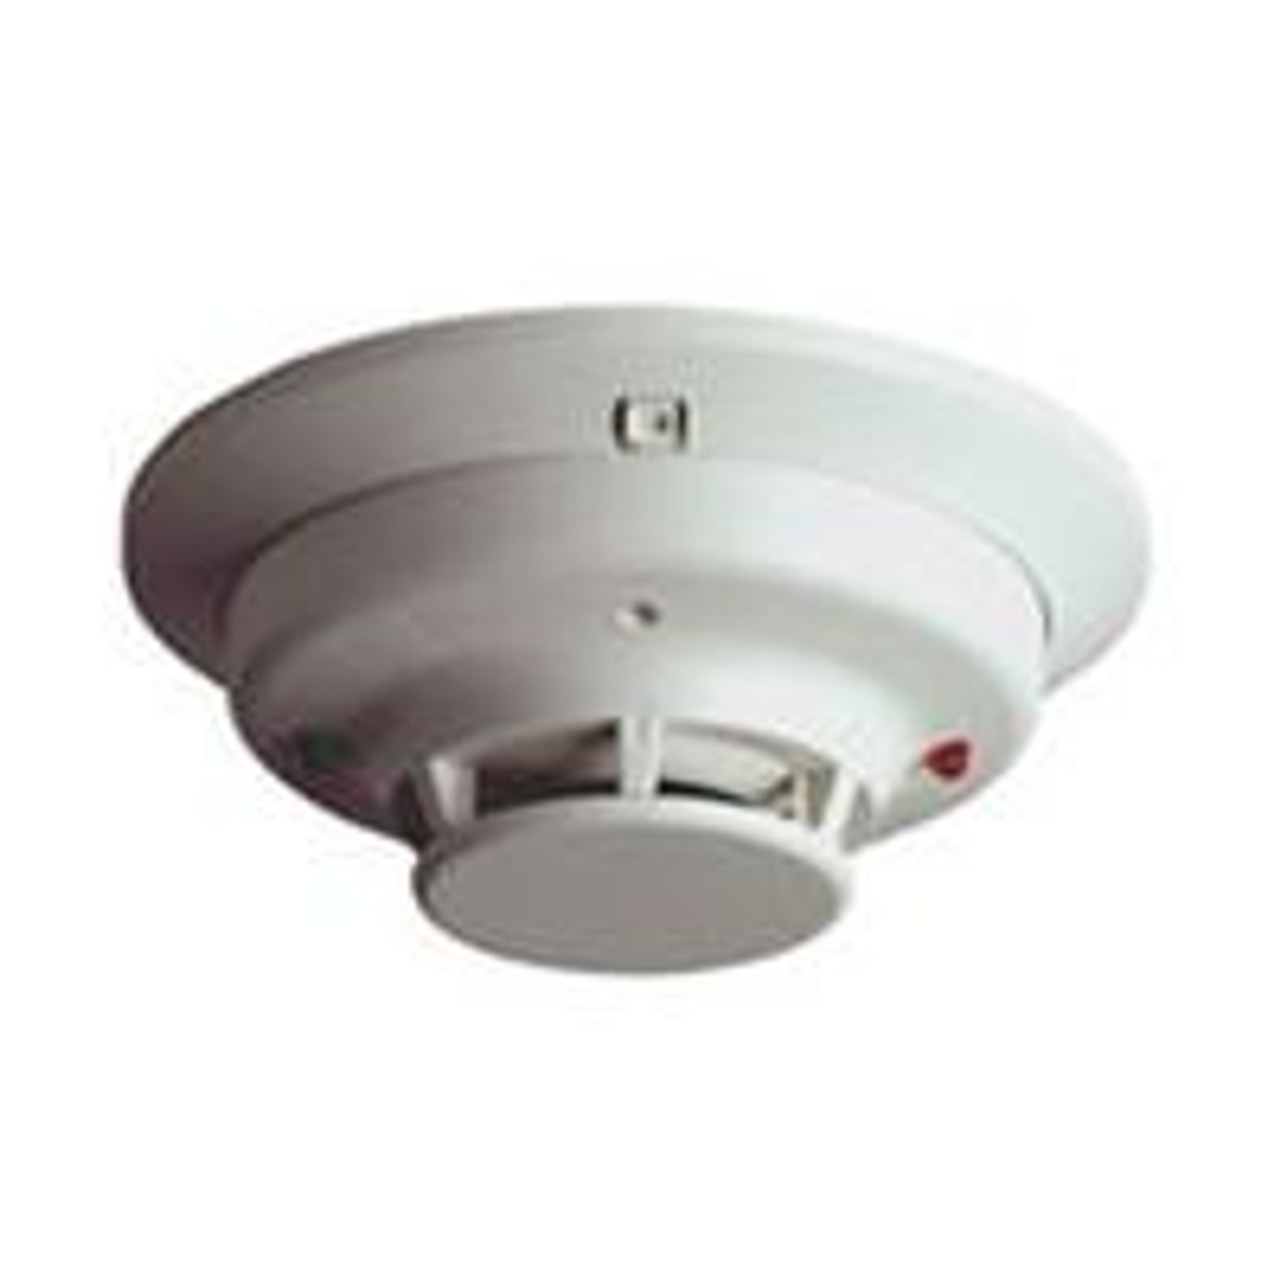 System Sensor 2W-B Series 2-Wire Photoelectric Smoke Detector